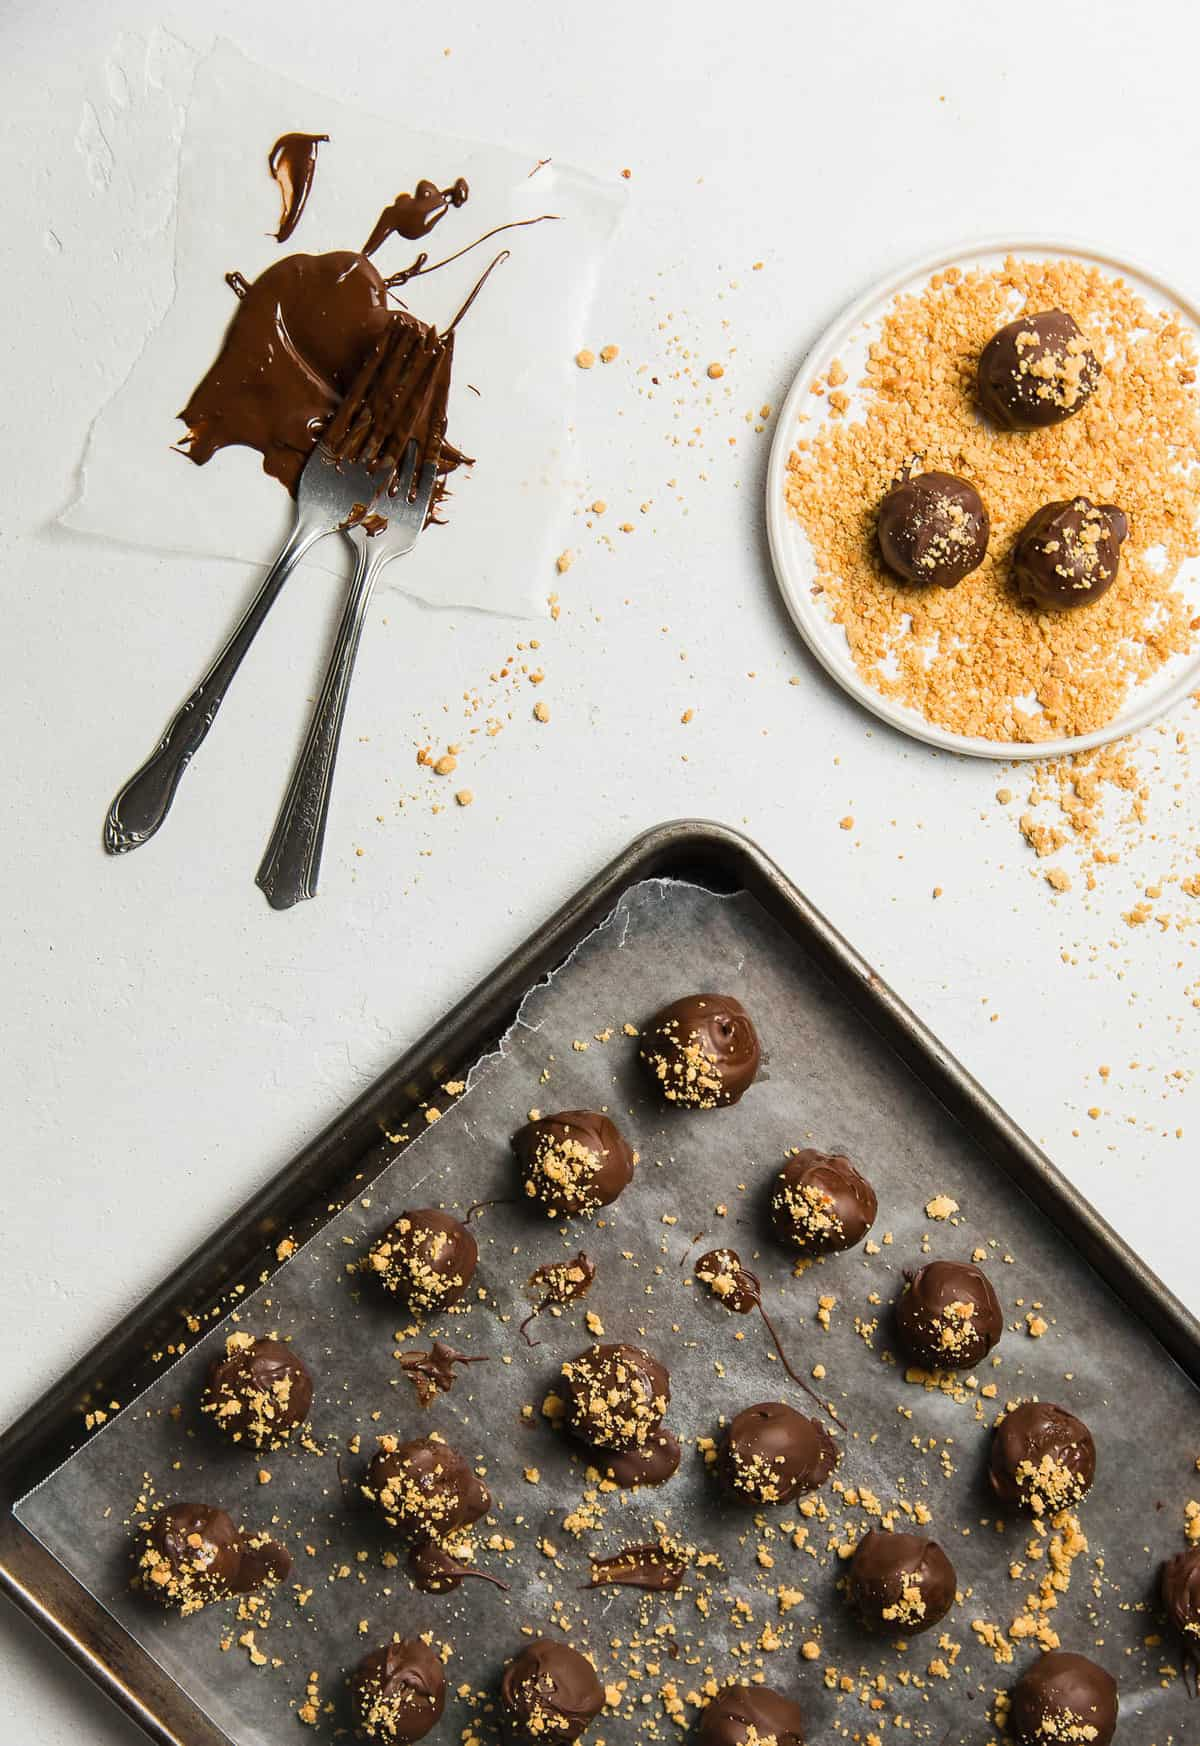 Chocolate Peanut Butter Delights, plant based, vegan, vegetarian, whole food plant based, gluten free, recipe, wfpb, healthy, healthy vegan, oil free, no refined sugar, no oil, refined sugar free, dairy free, dinner party, entertaining, dessert, sweets, treats